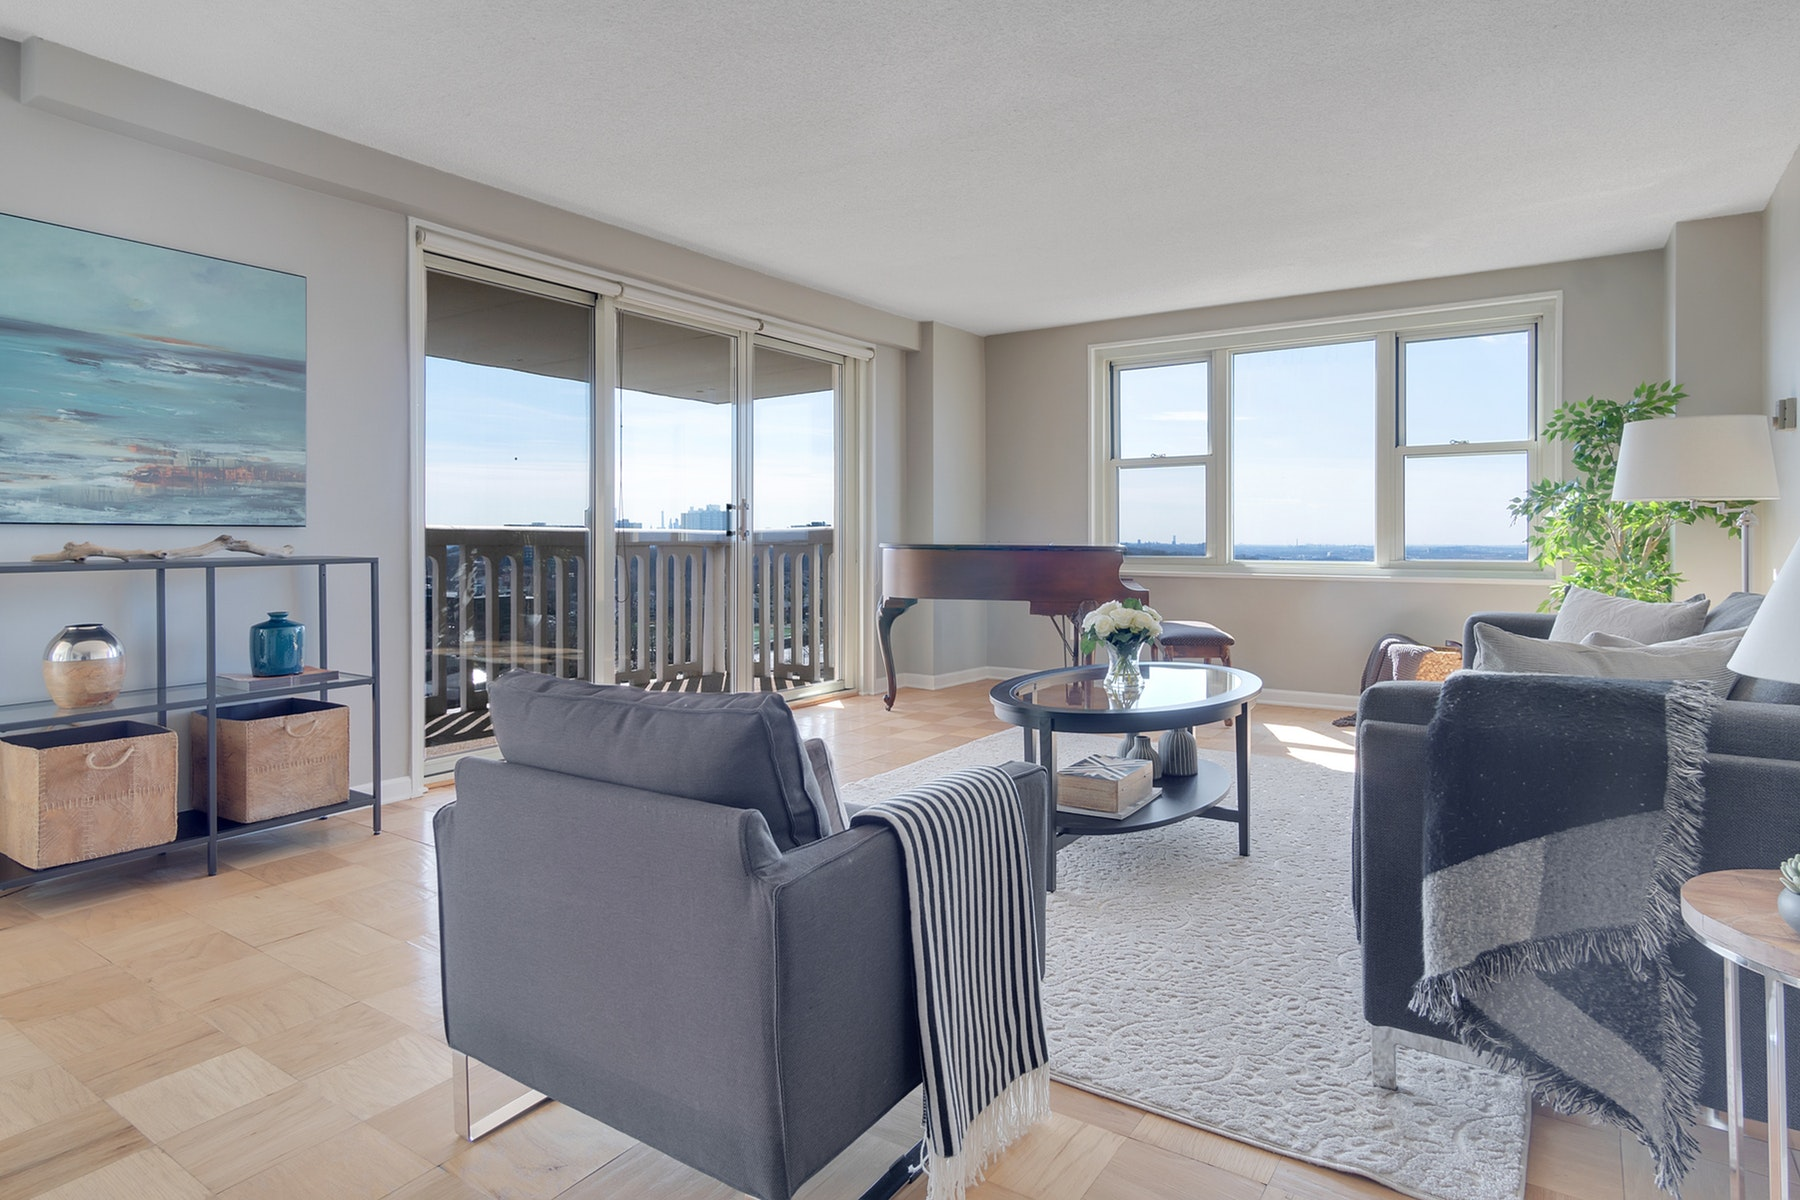 Co-op for Sale at 555 North Ave #11F Fort Lee, New Jersey 07024 United States